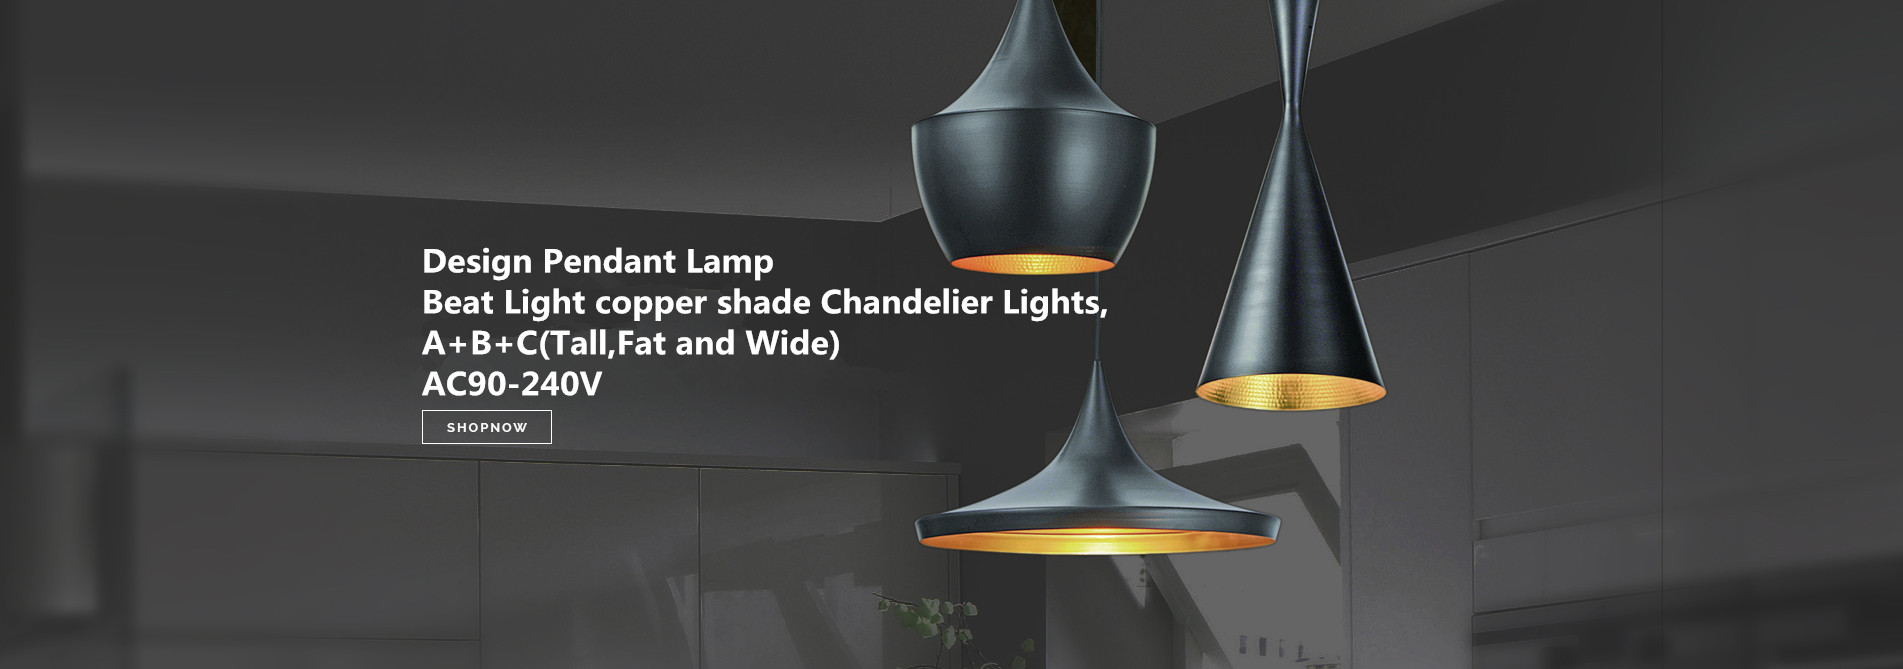 Design Pendant Lamp Beat Light copper shade Chandelier